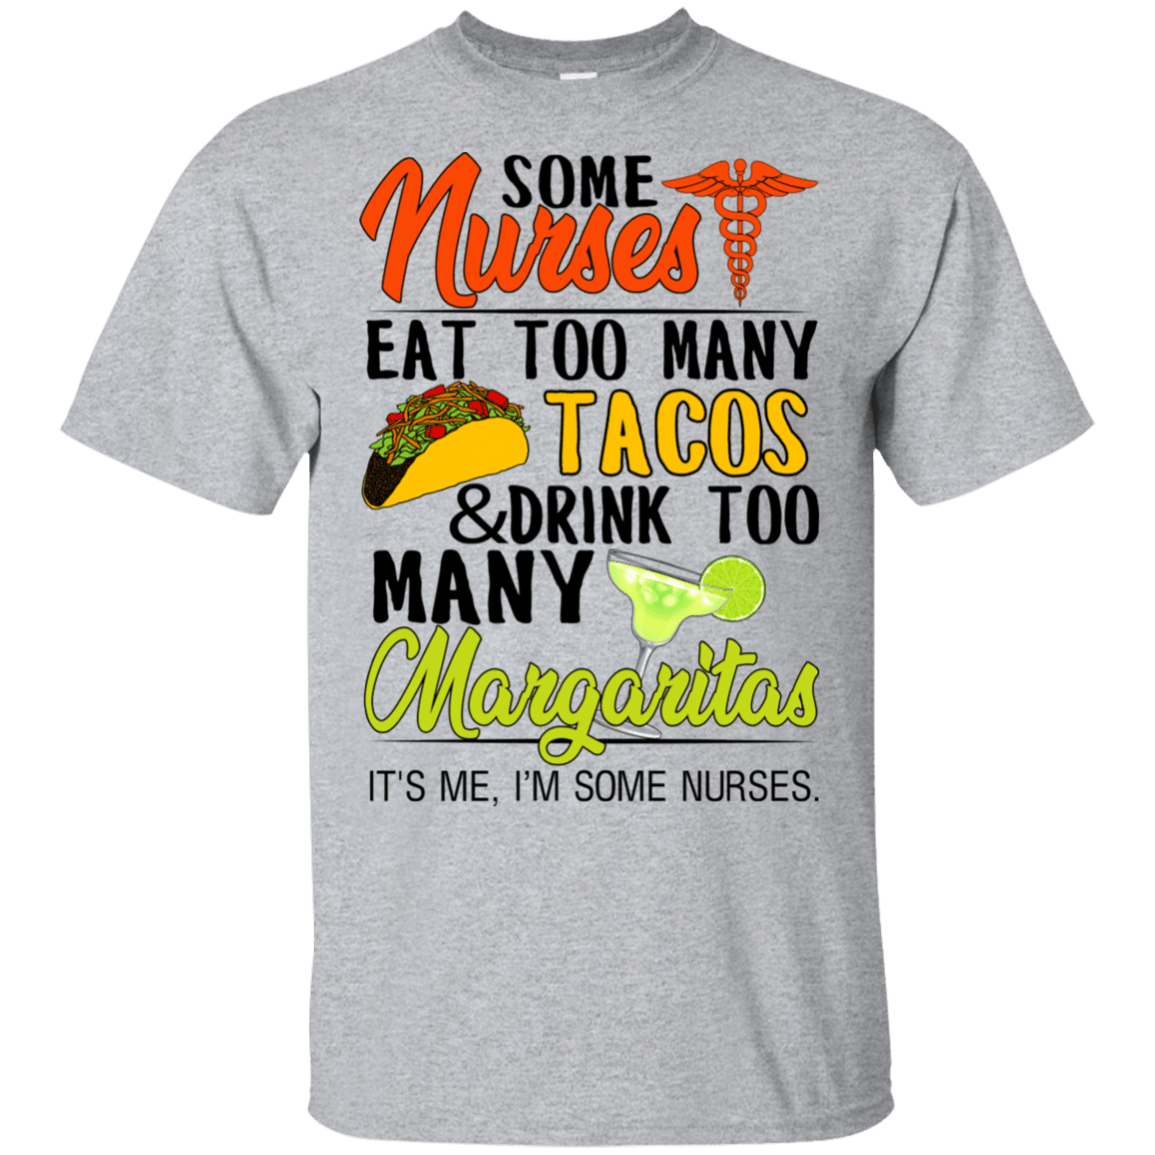 Some Nurses Eat Too Many Tacos & Drink Too Many Margaritas It's Me I'm Some Nurses T-Shirts & Hoodies 22-115-76452264-254 - Tee Ript